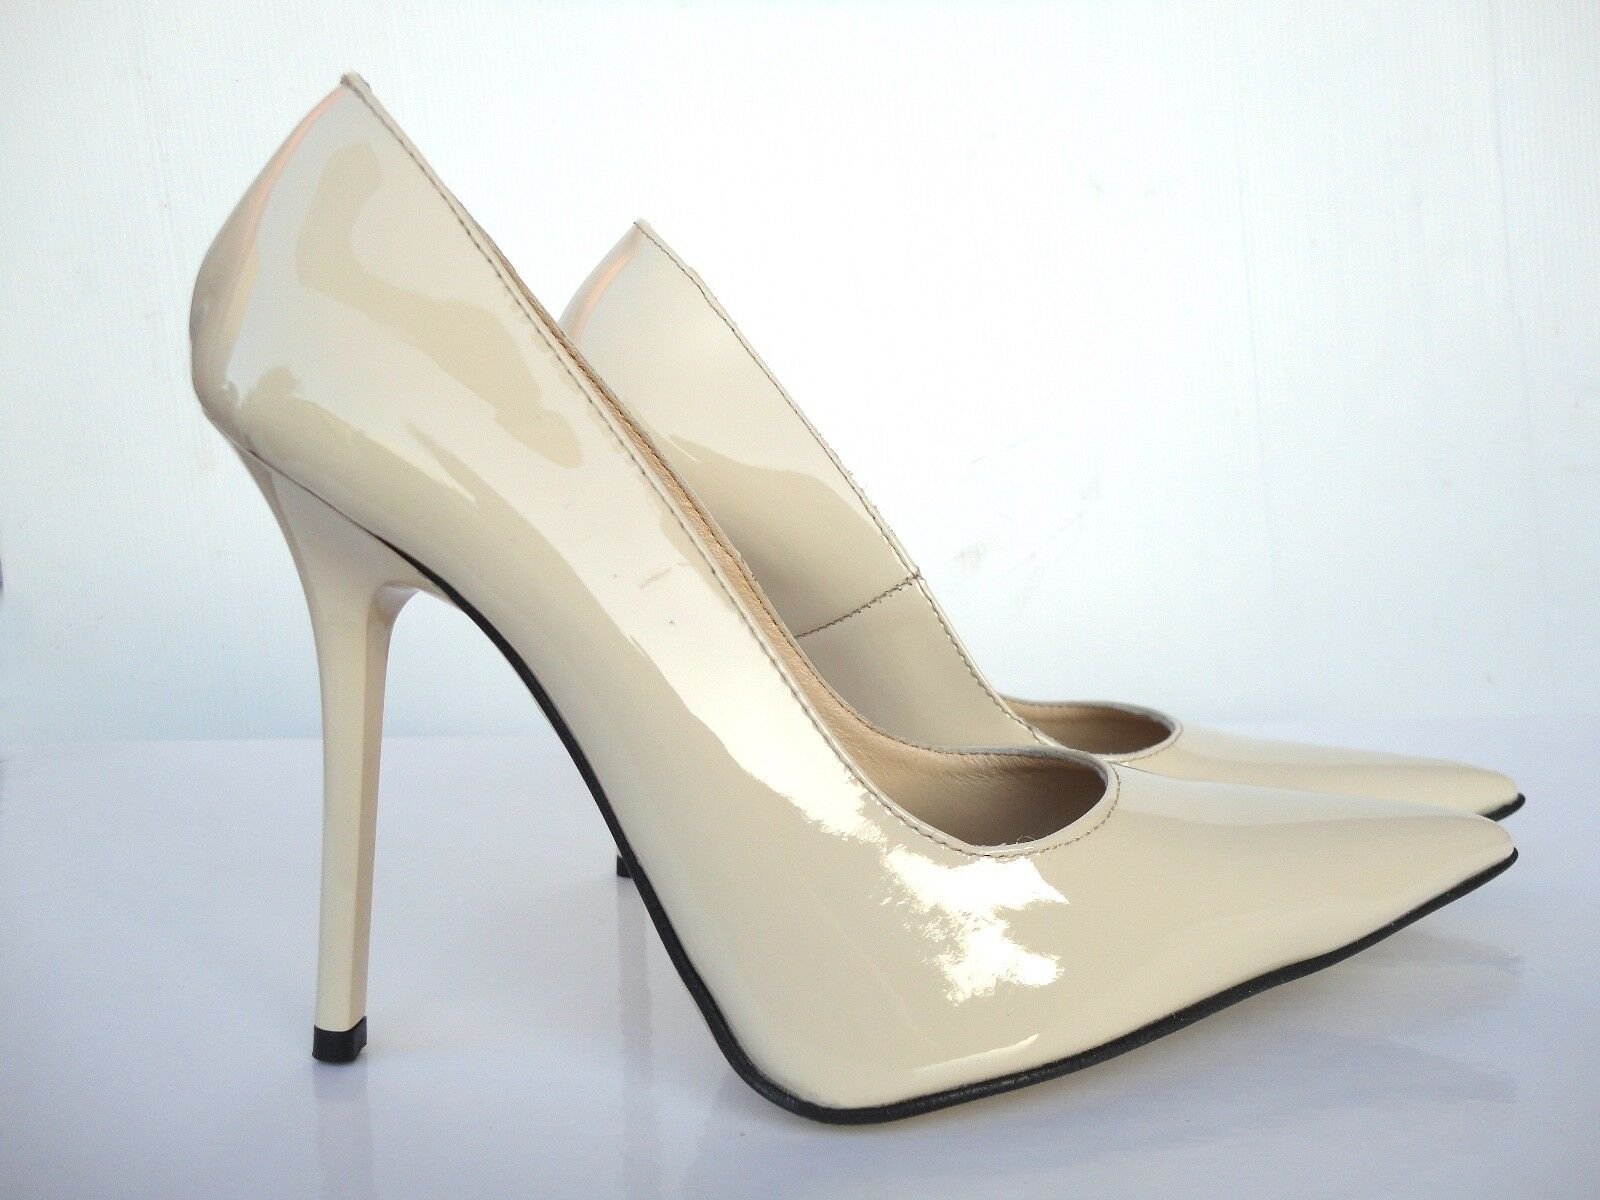 GIOHEL ITALY HIGH HIGH HIGH HEELS POINTY TOE PUMPS zapatos LEATHER DECOLTE NUDE BEIGE 38  marca